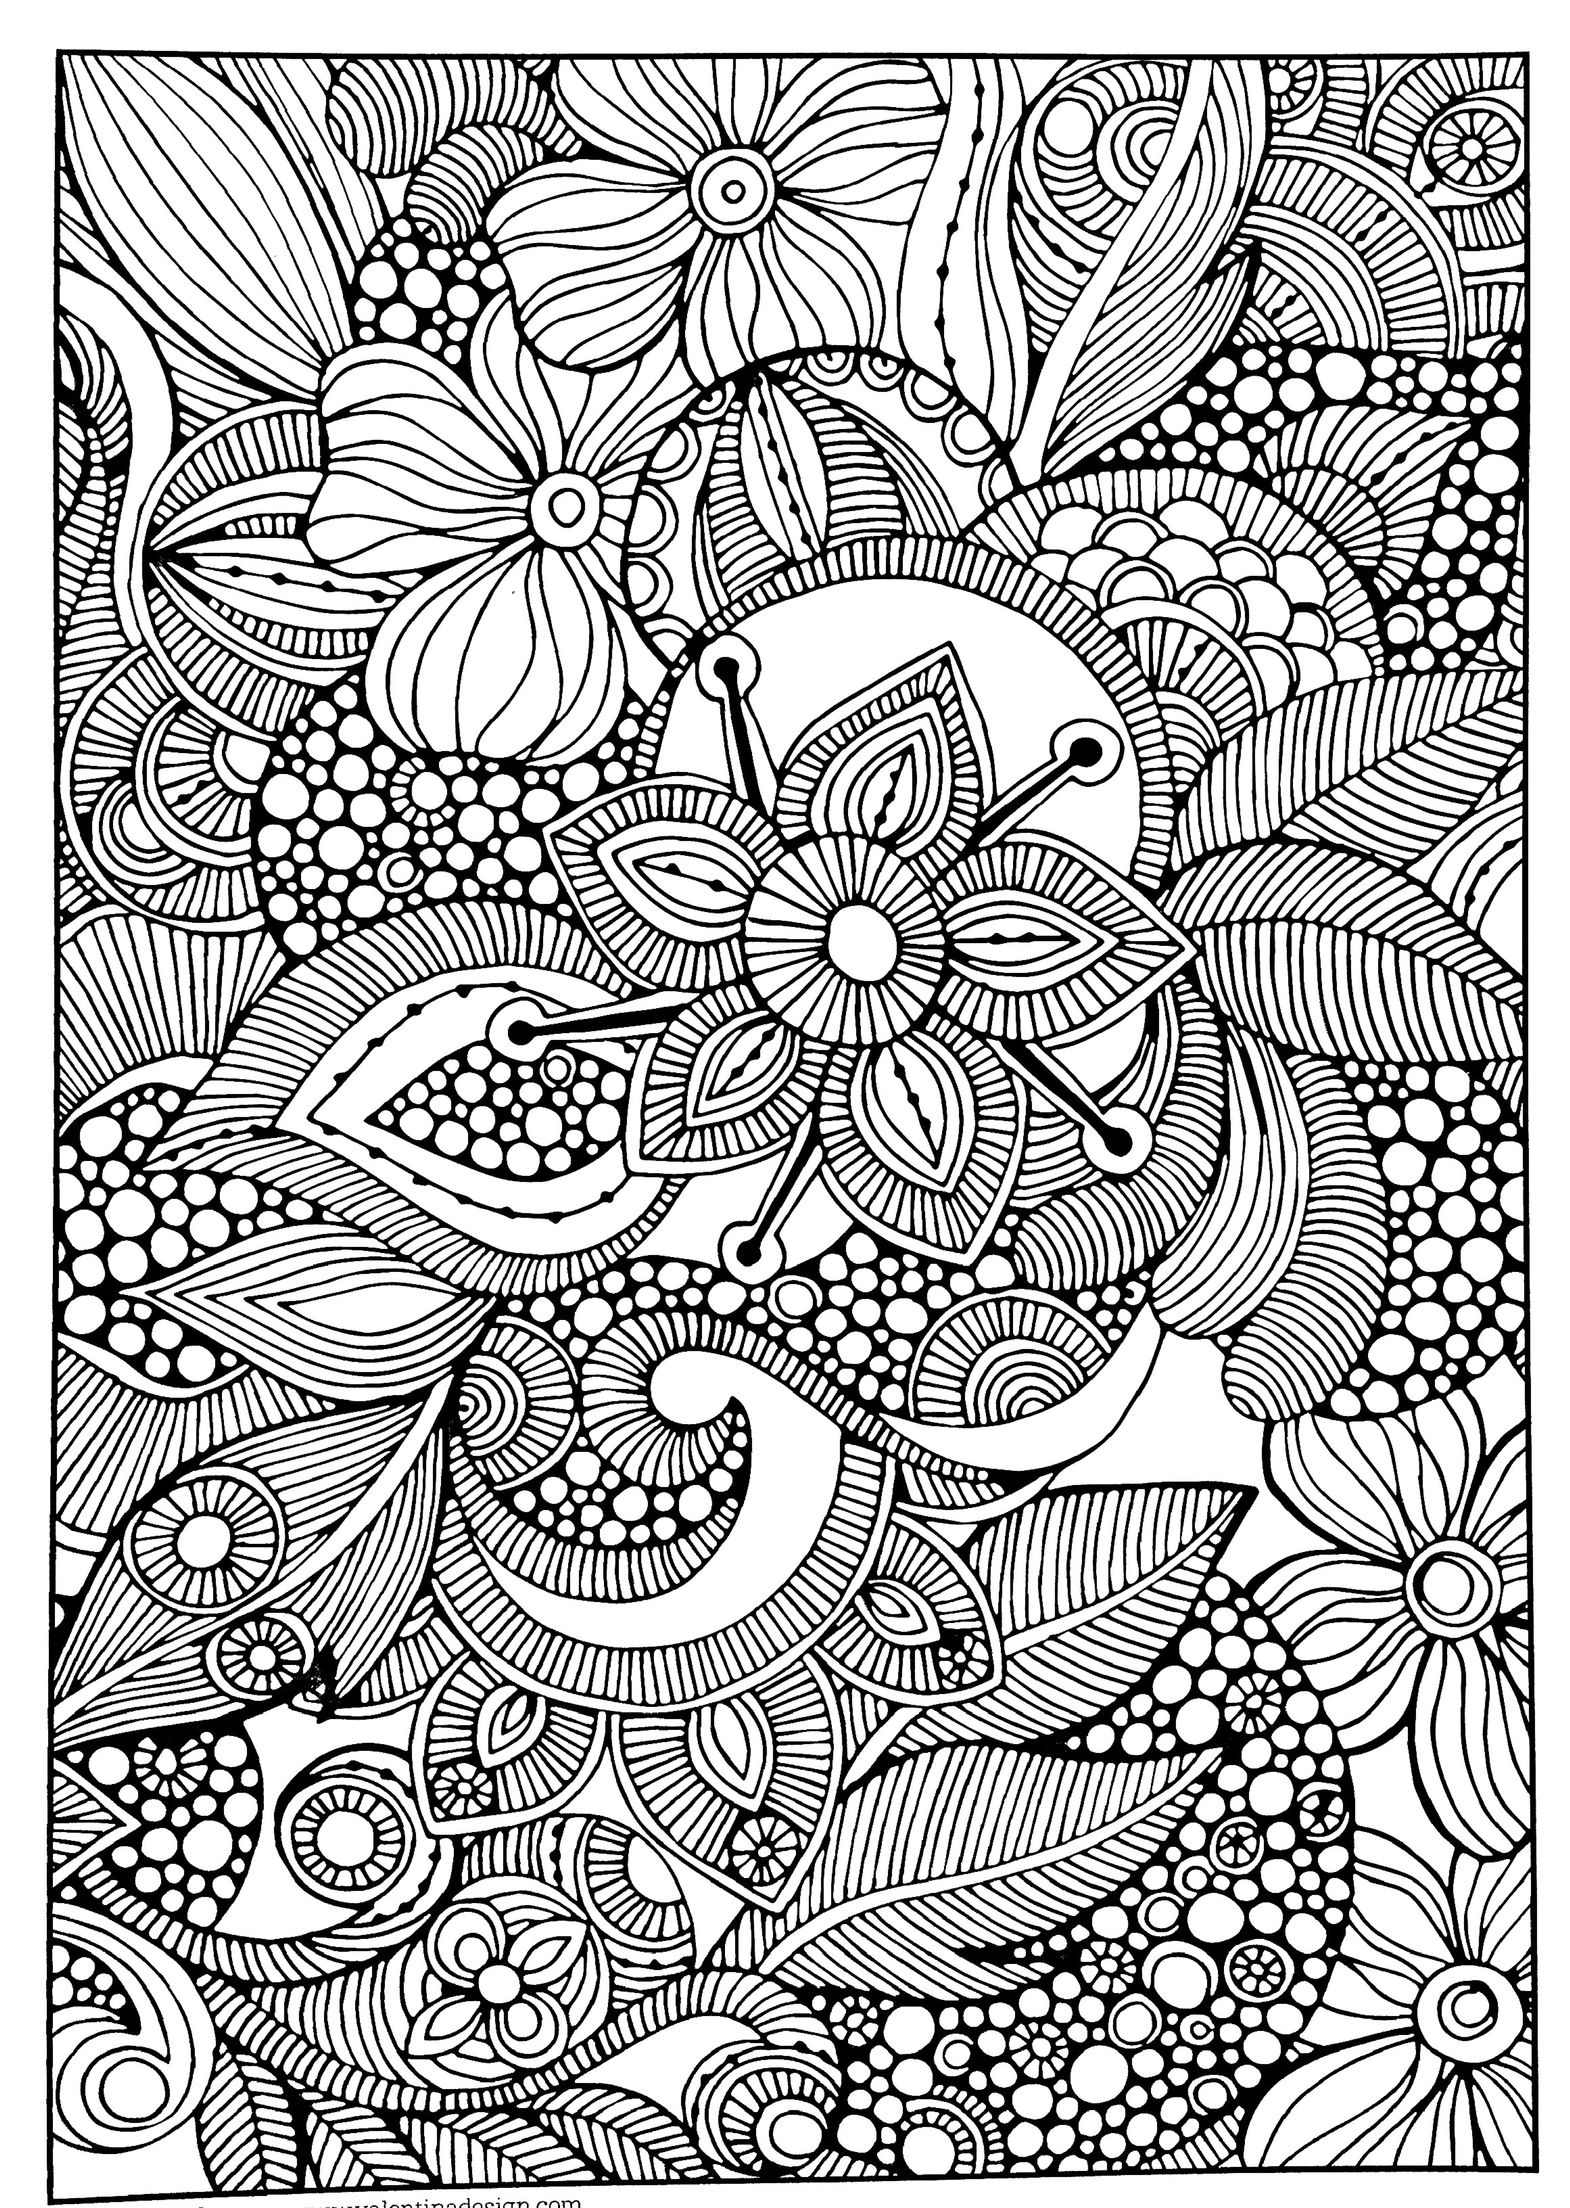 Adult coloring page kleurplaten Pinterest Adult coloring